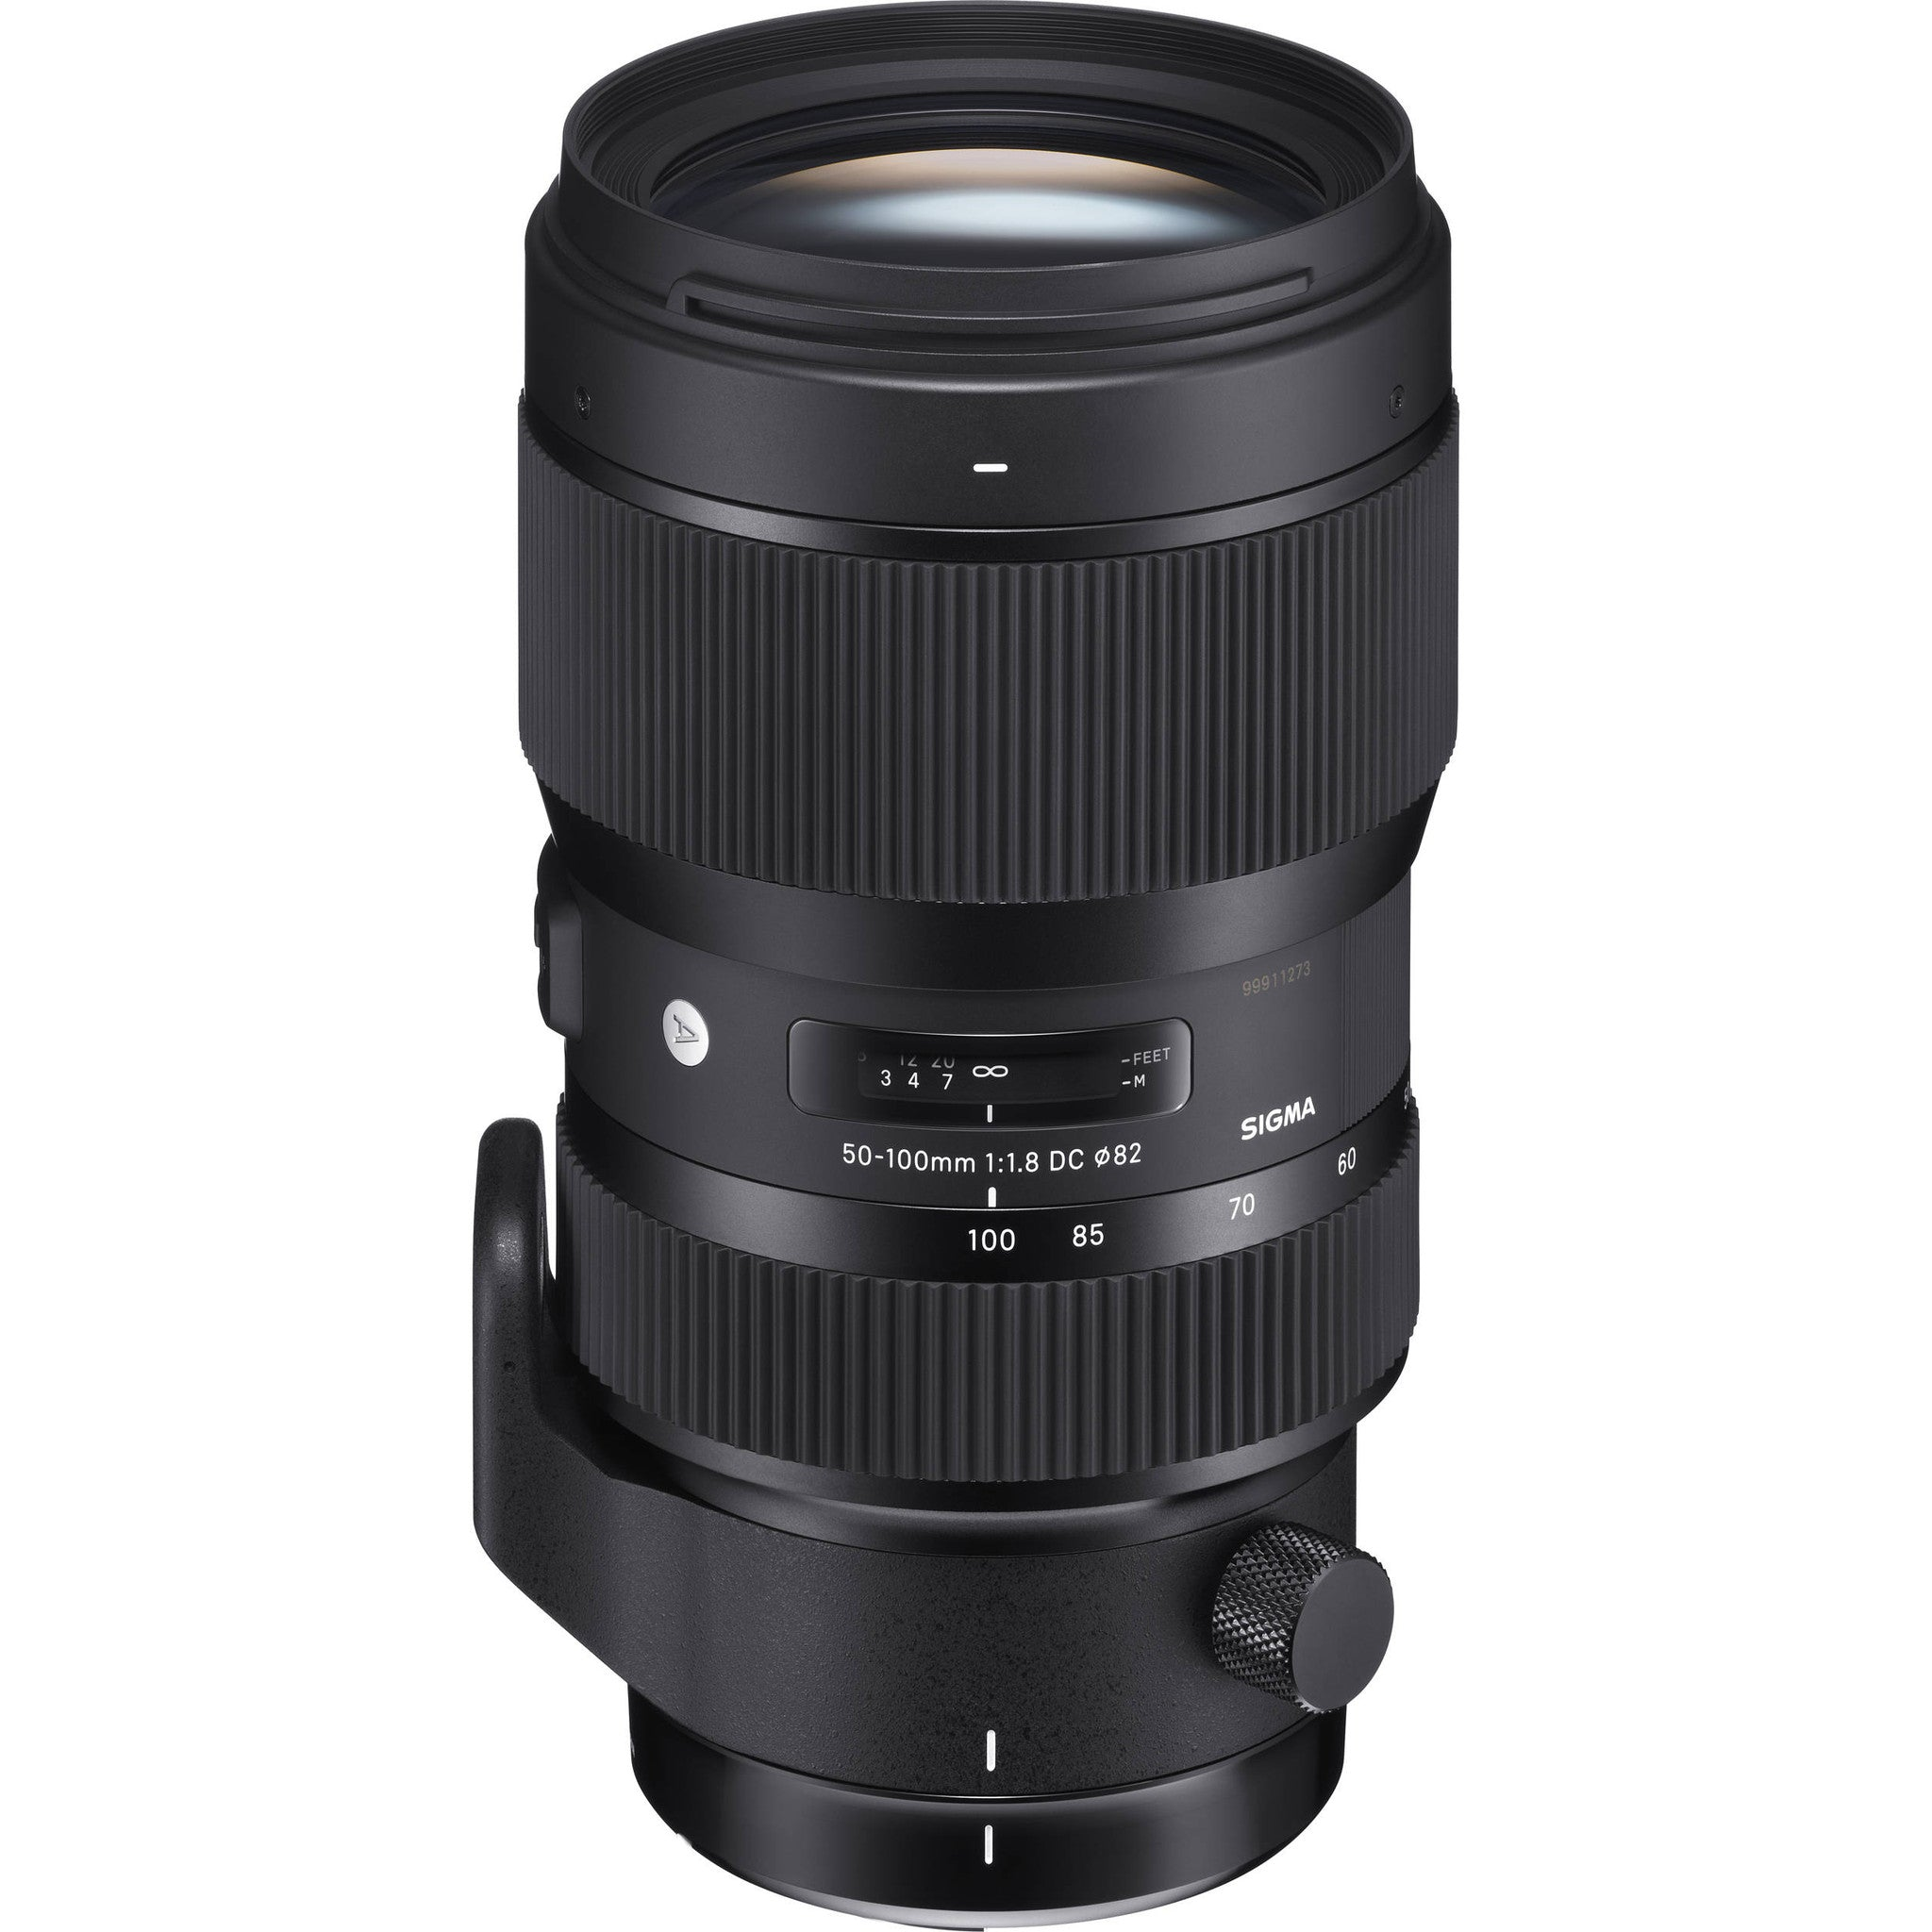 Sigma 50-100mm F1.8 Art DC HSM (Nikon)